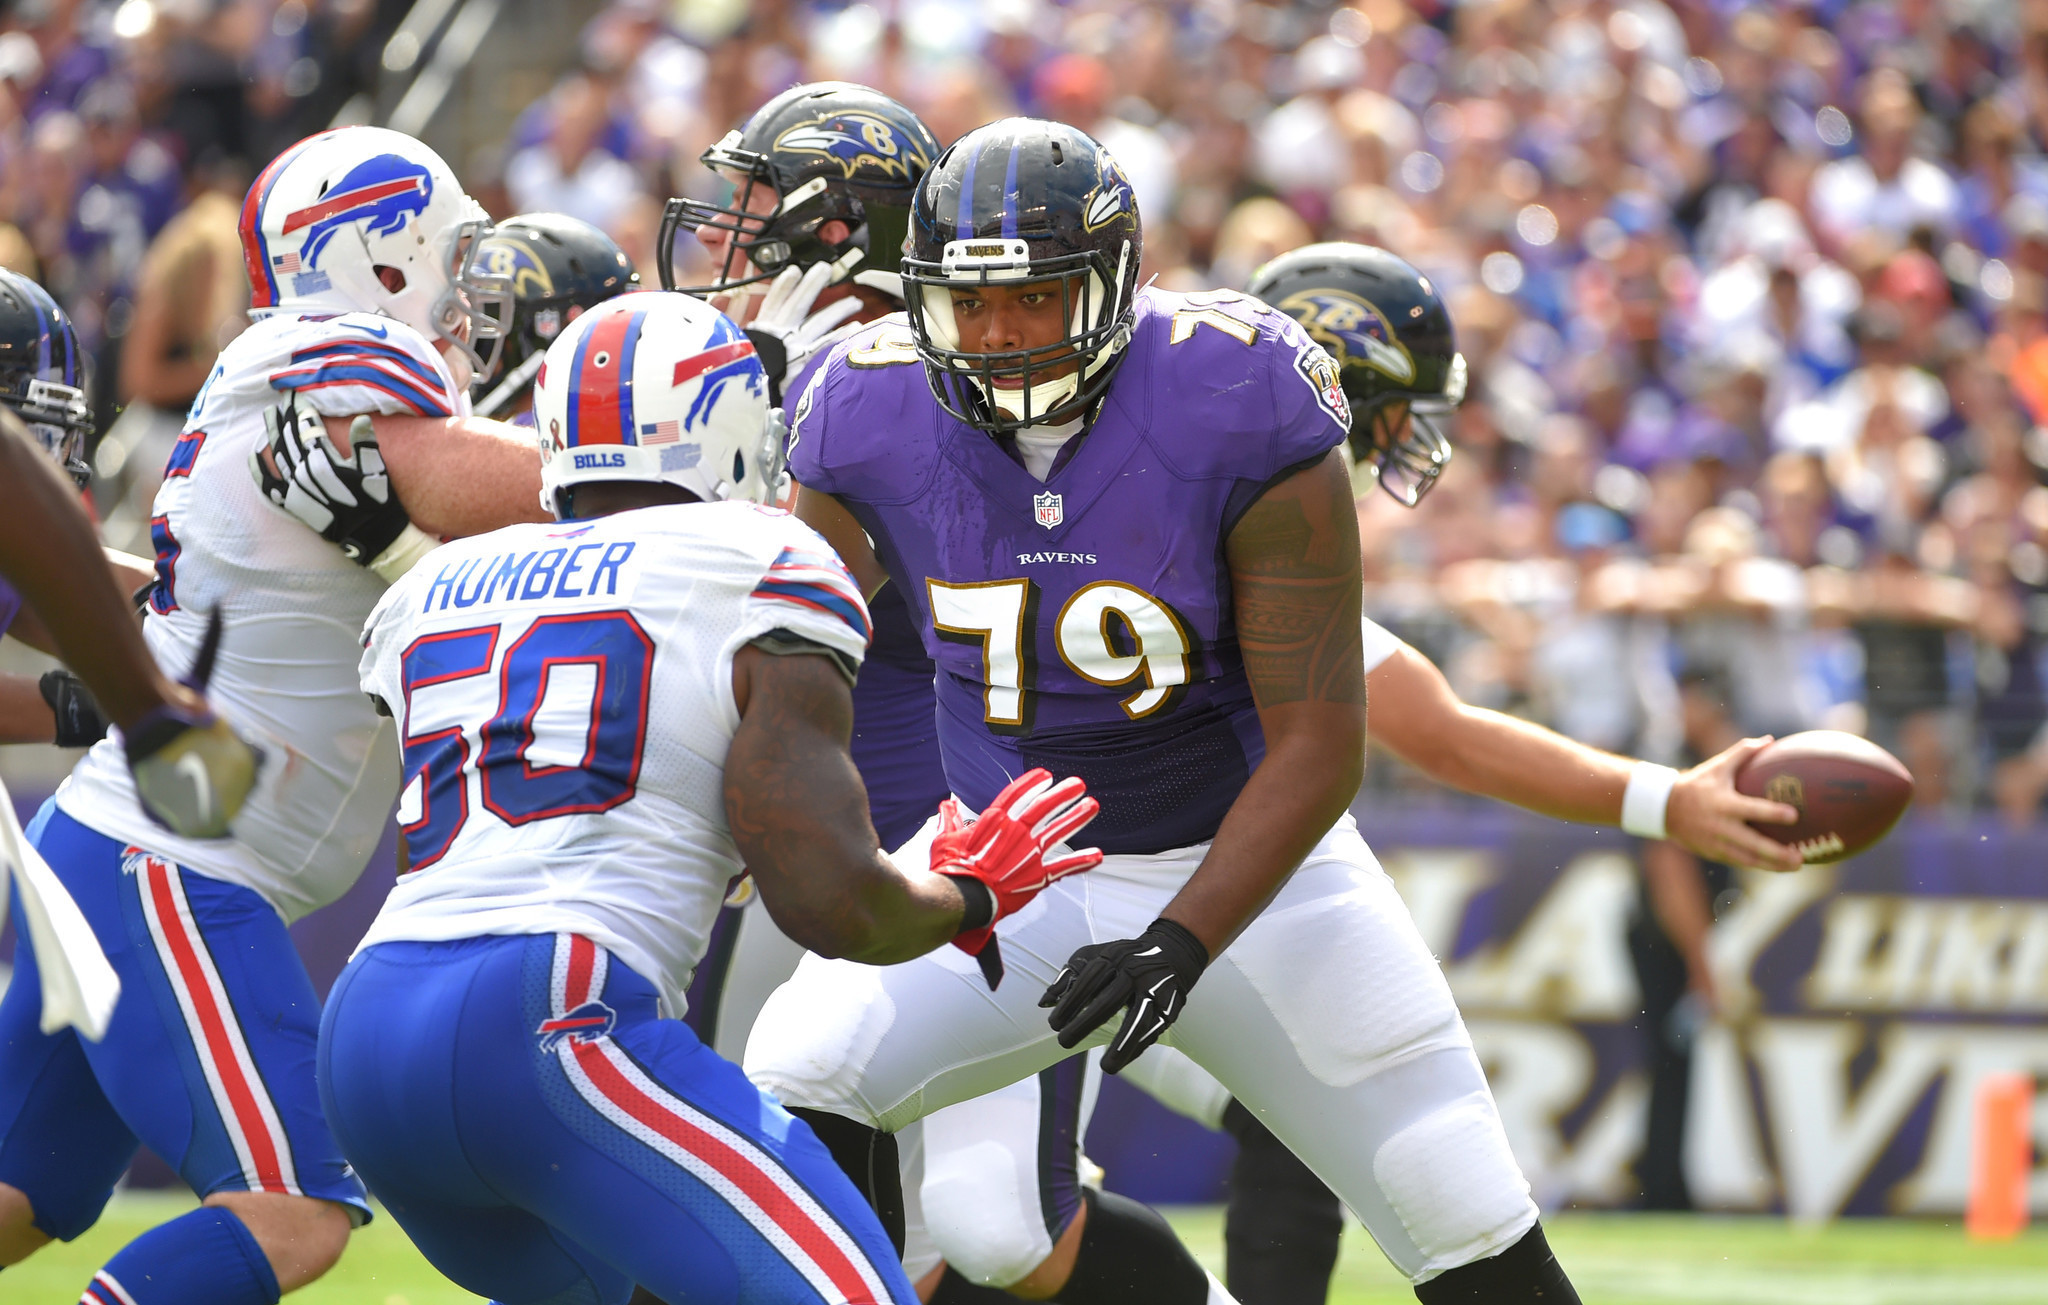 Bal-ravens-left-tackle-ronnie-stanley-is-doubtful-for-sunday-s-game-vs-oakland-raiders-20160930